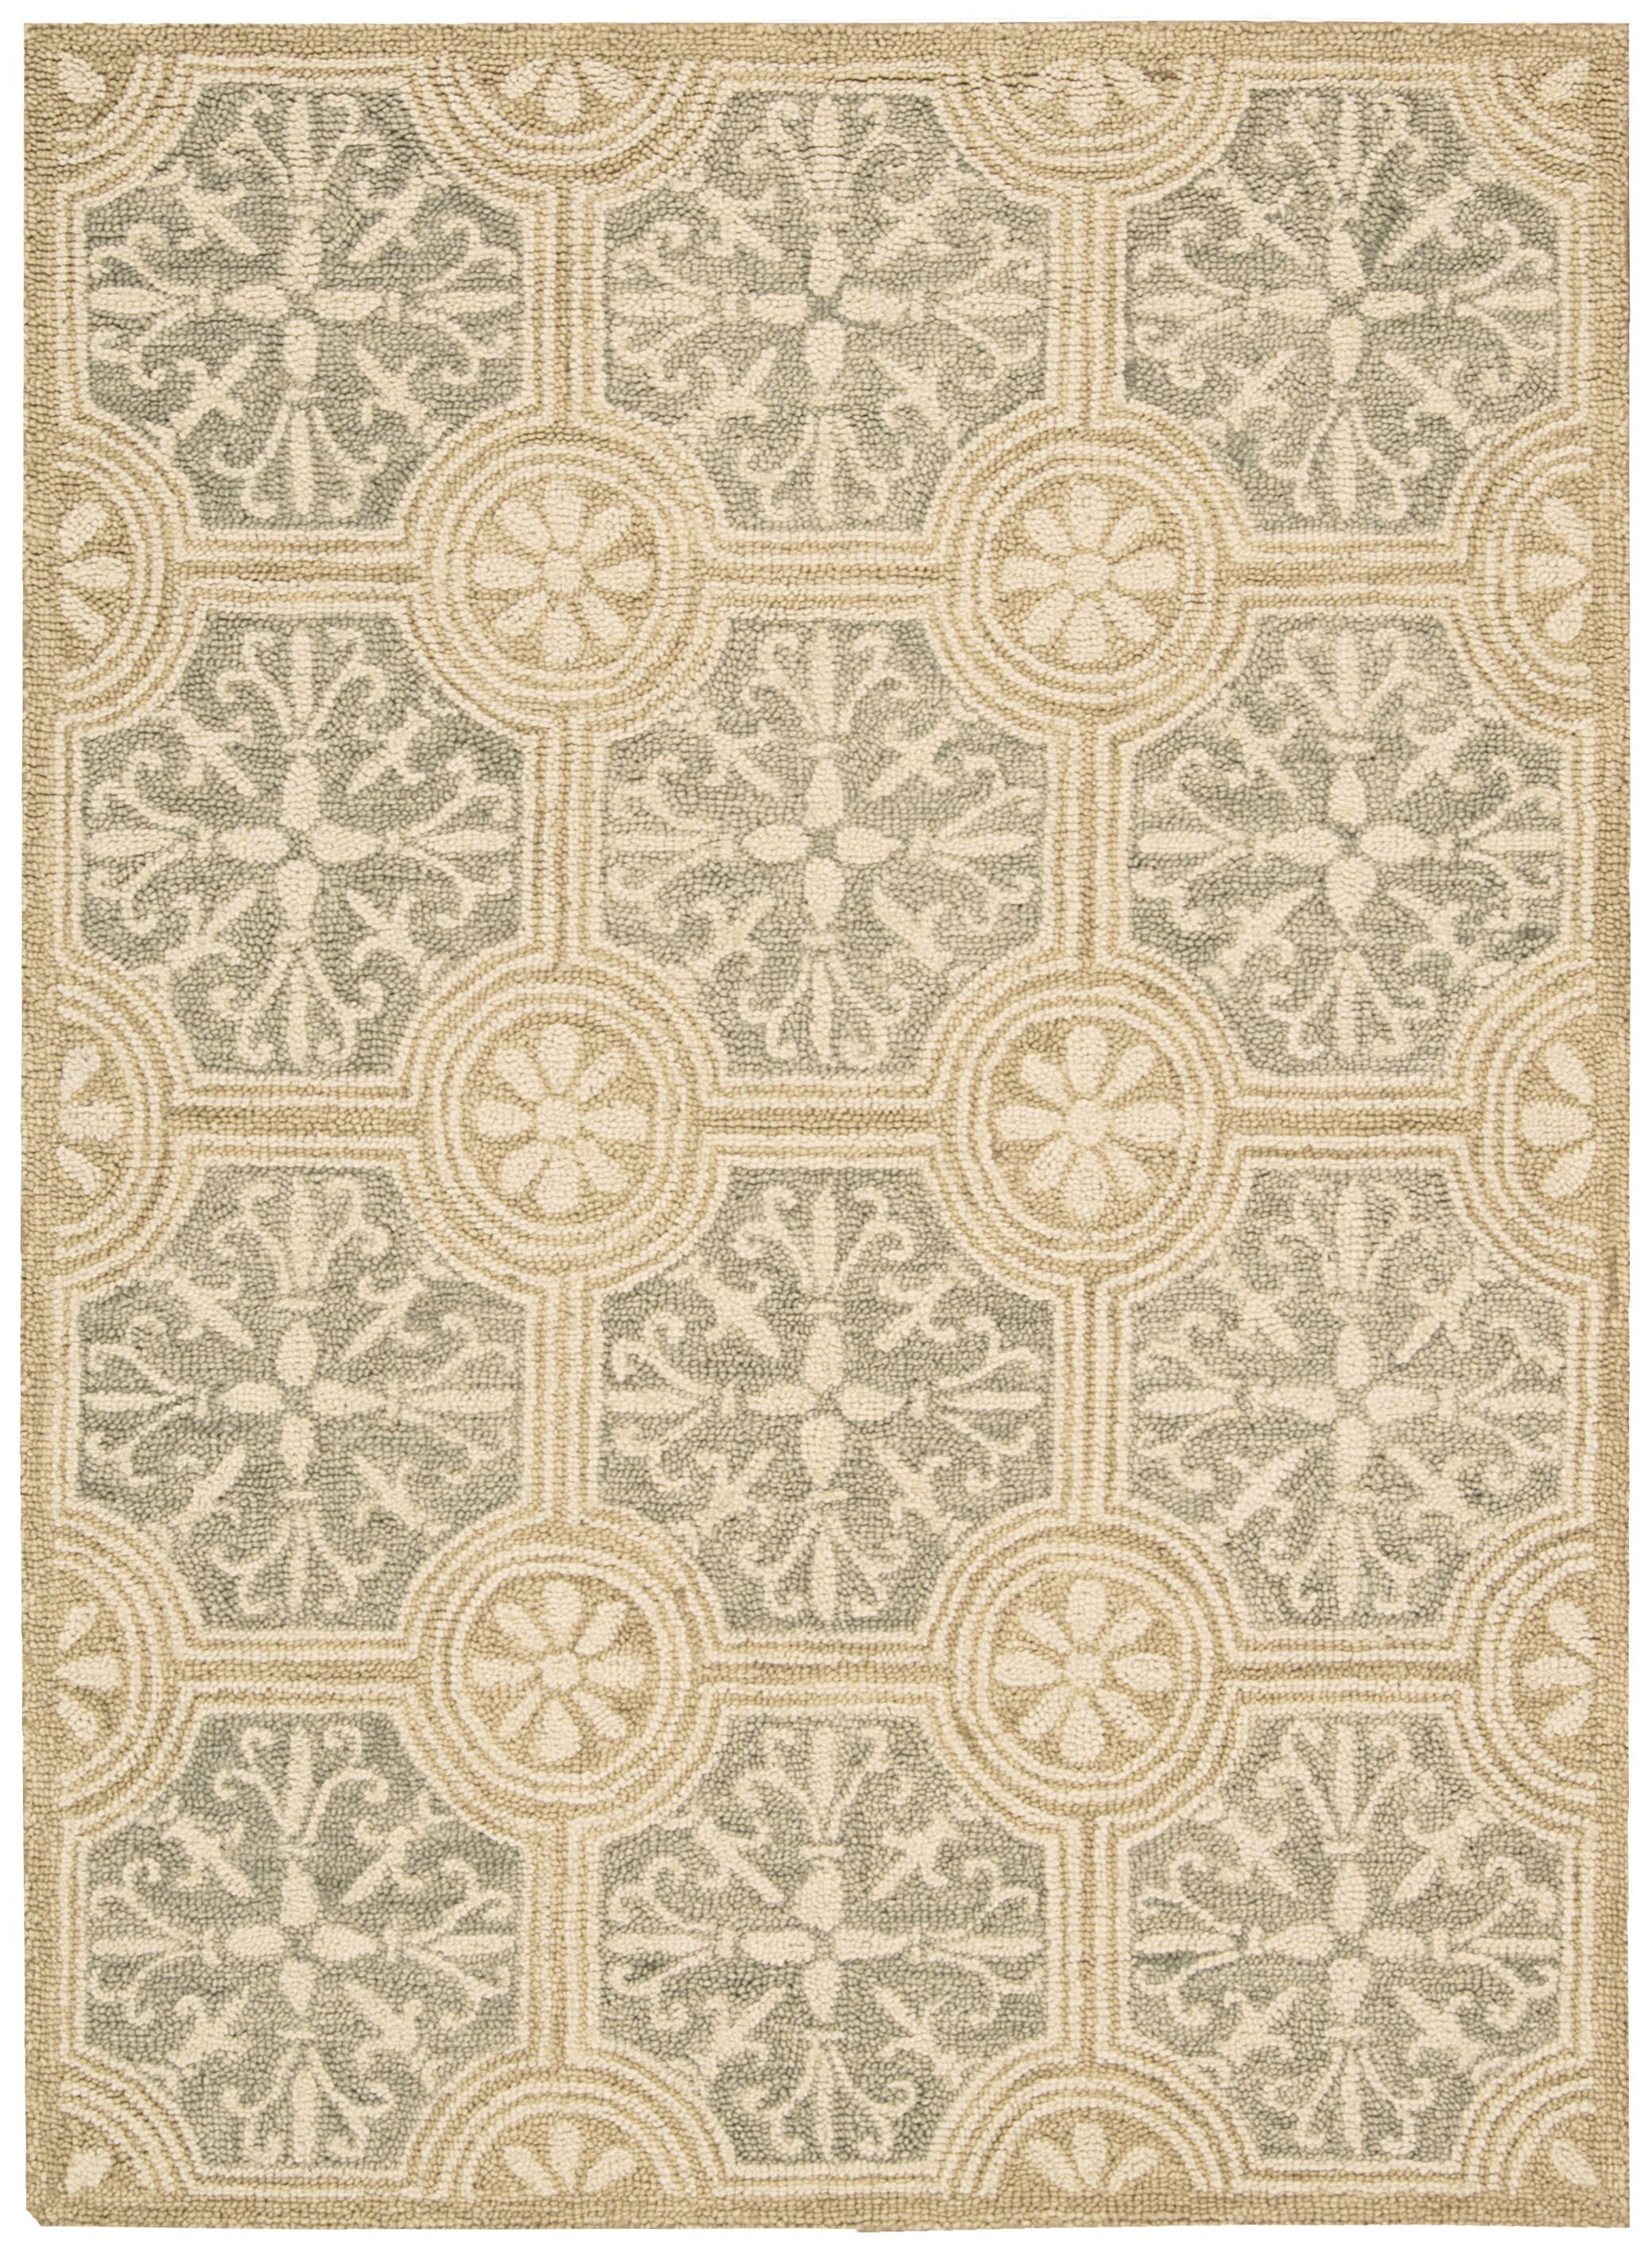 Tracie Hand-Tufted Stone Area Rug Rug Size: Rectangle 5' x 7'6